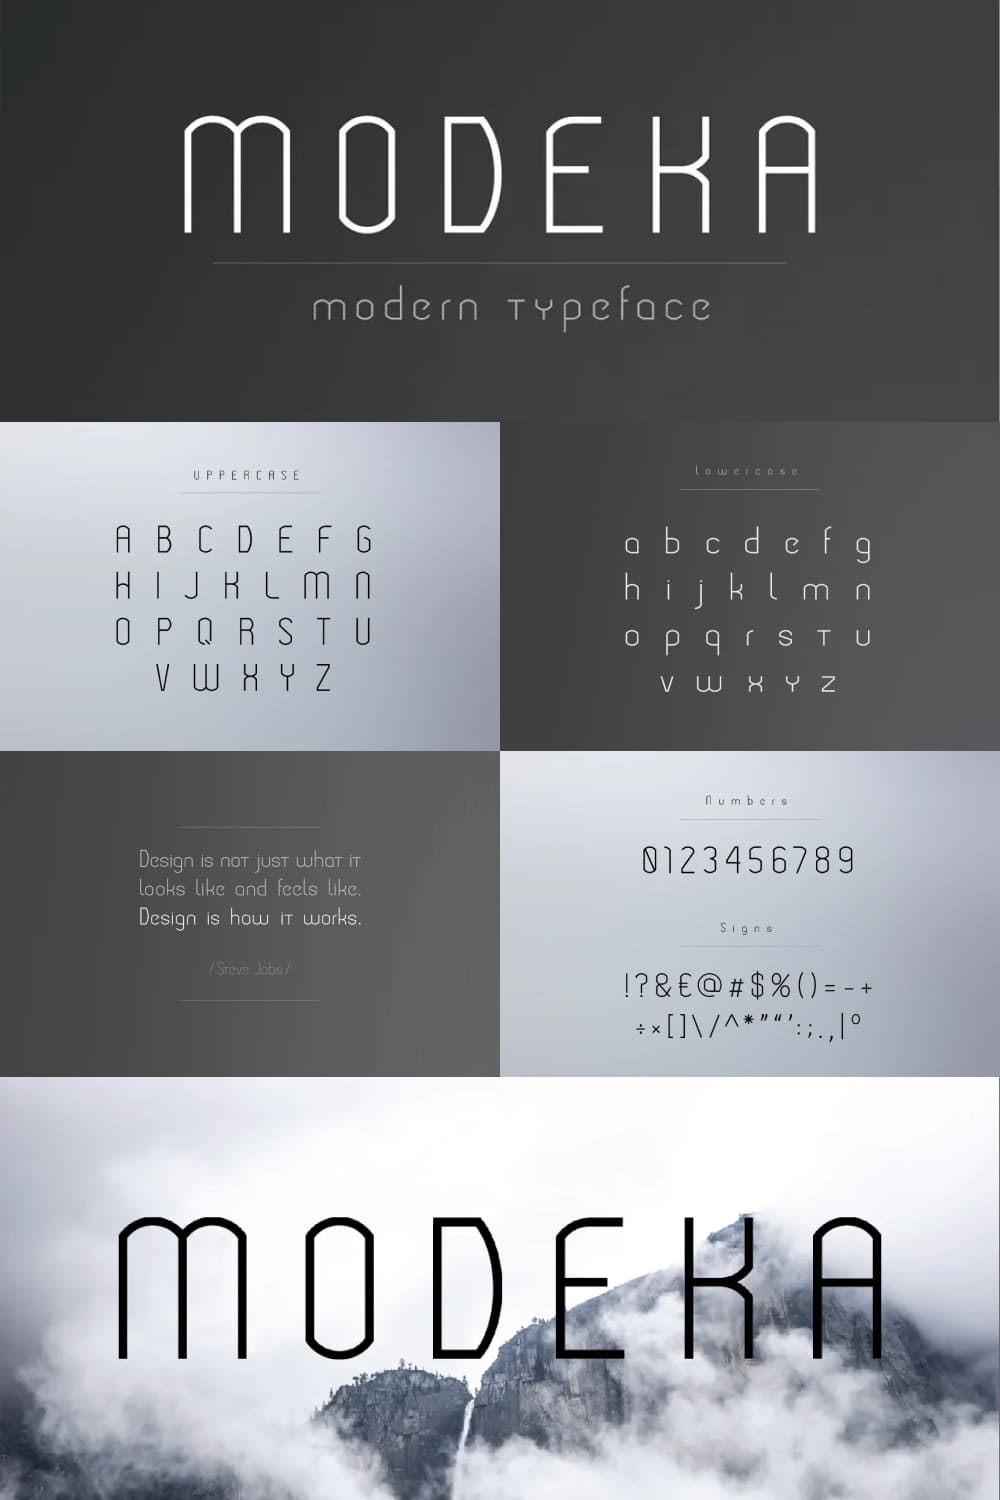 This font is reminiscent of the times of the Vikings - clear lines, uncompromising and cleanliness.